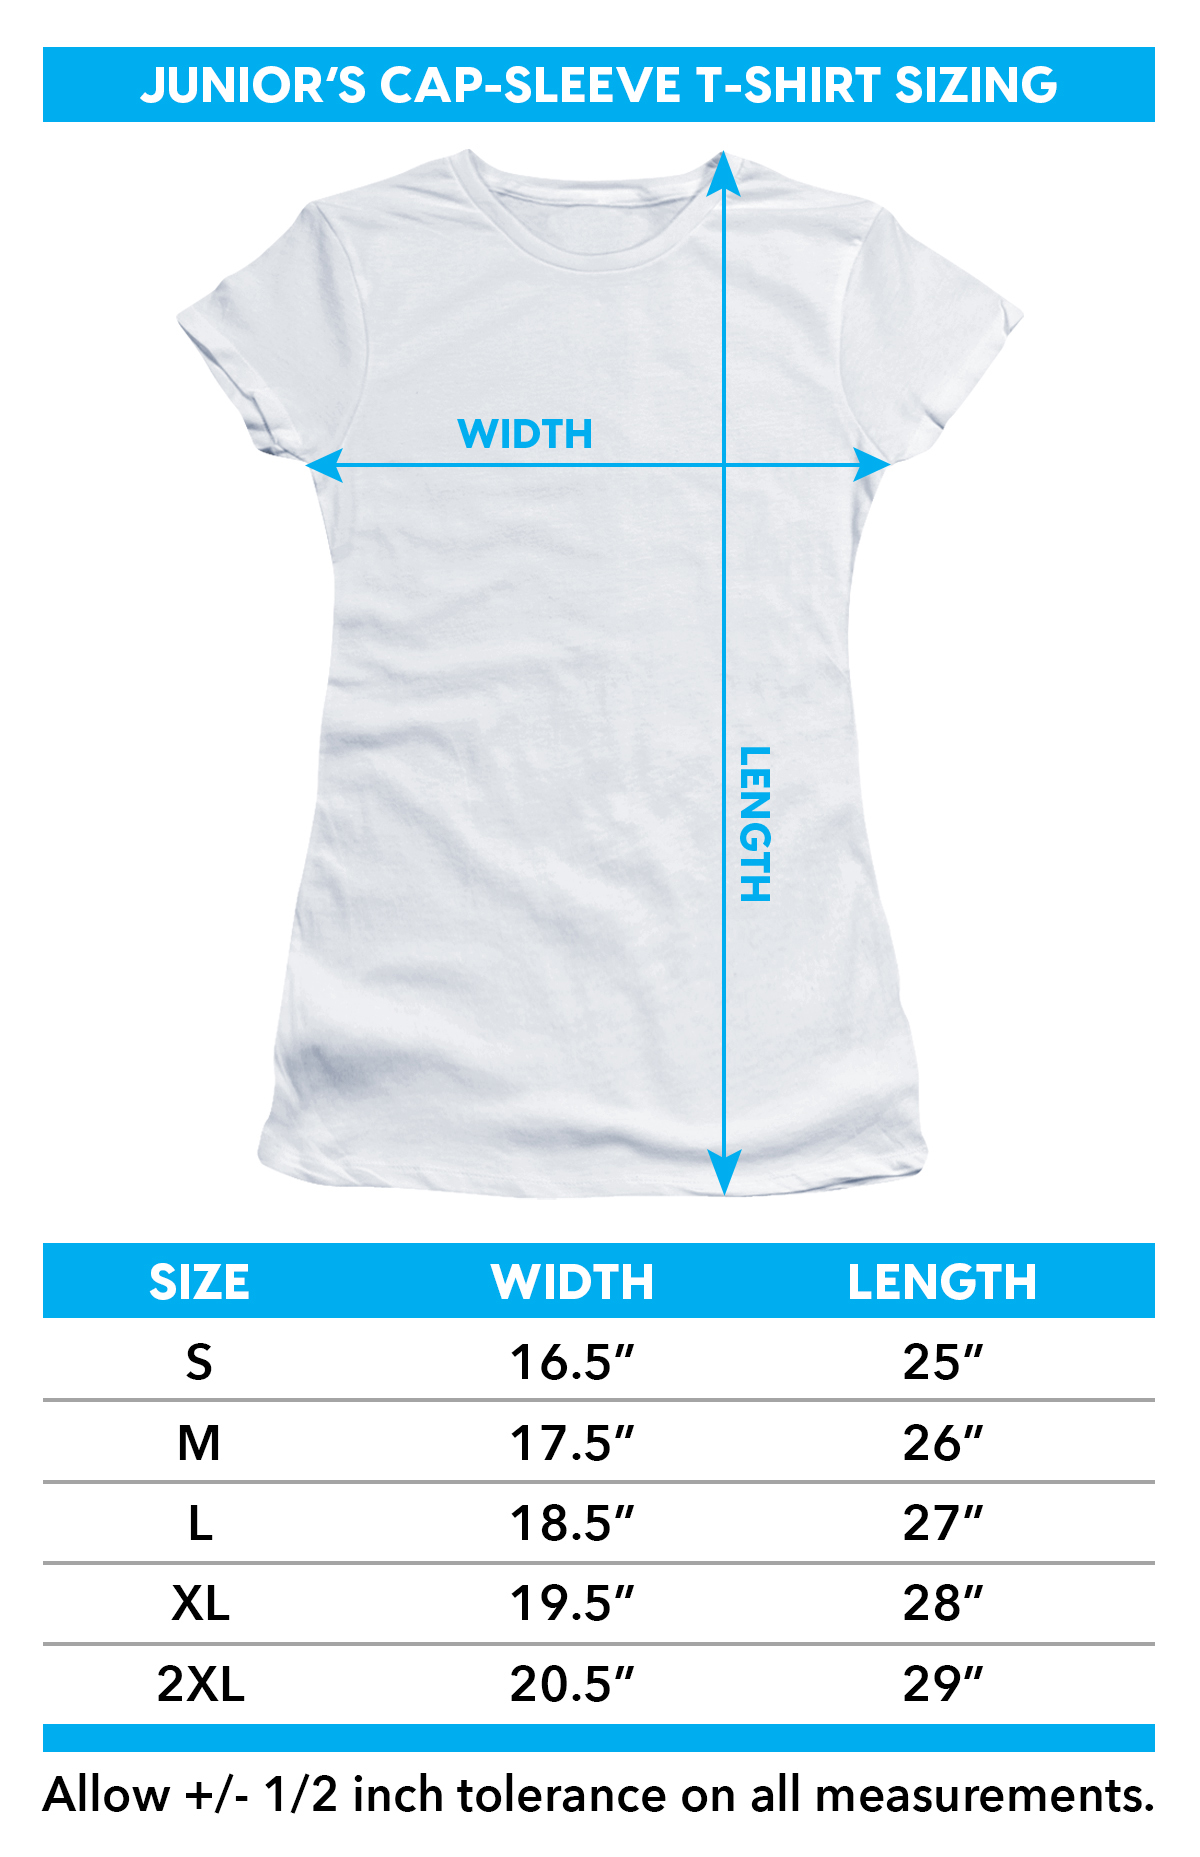 Girls sizing chart for The Hobbit Girls T-Shirt - Baggins Poster TRV-HOB1101-JS